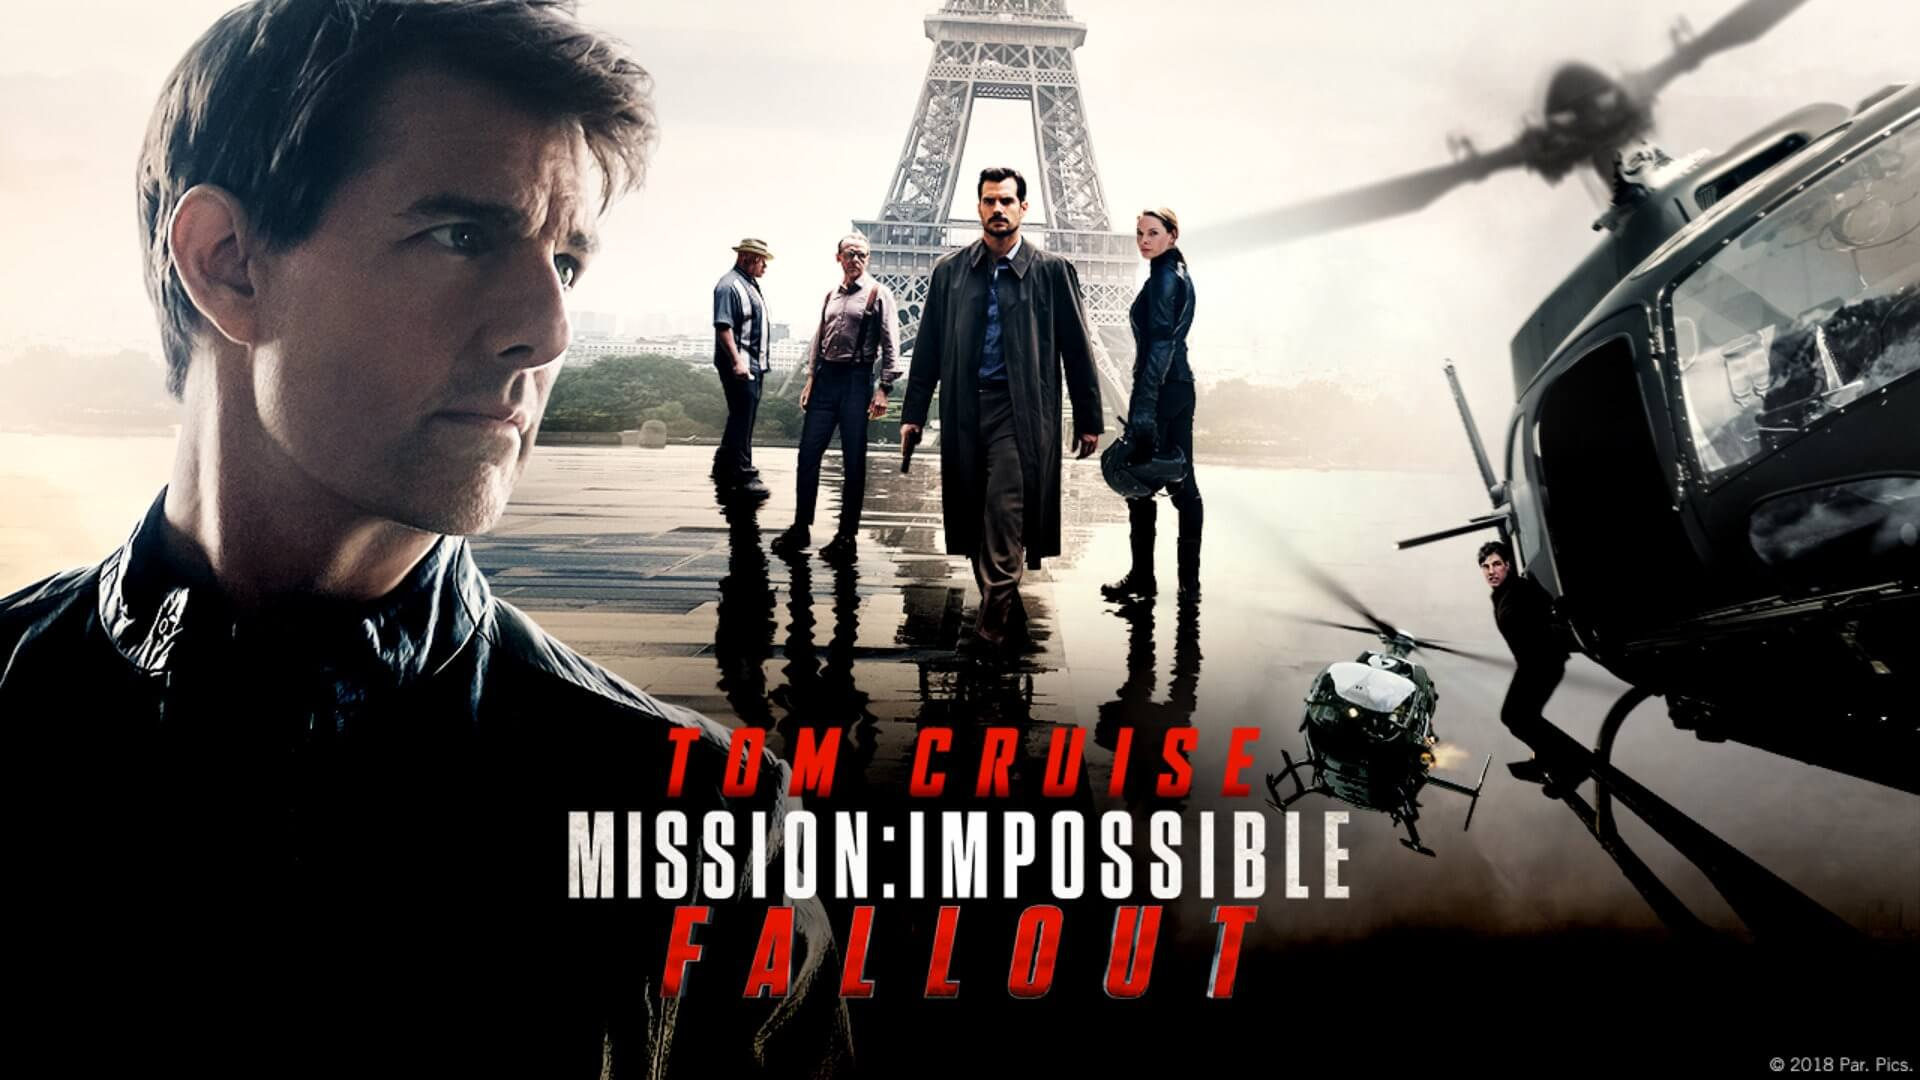 Mission Impossible 6: Fallout